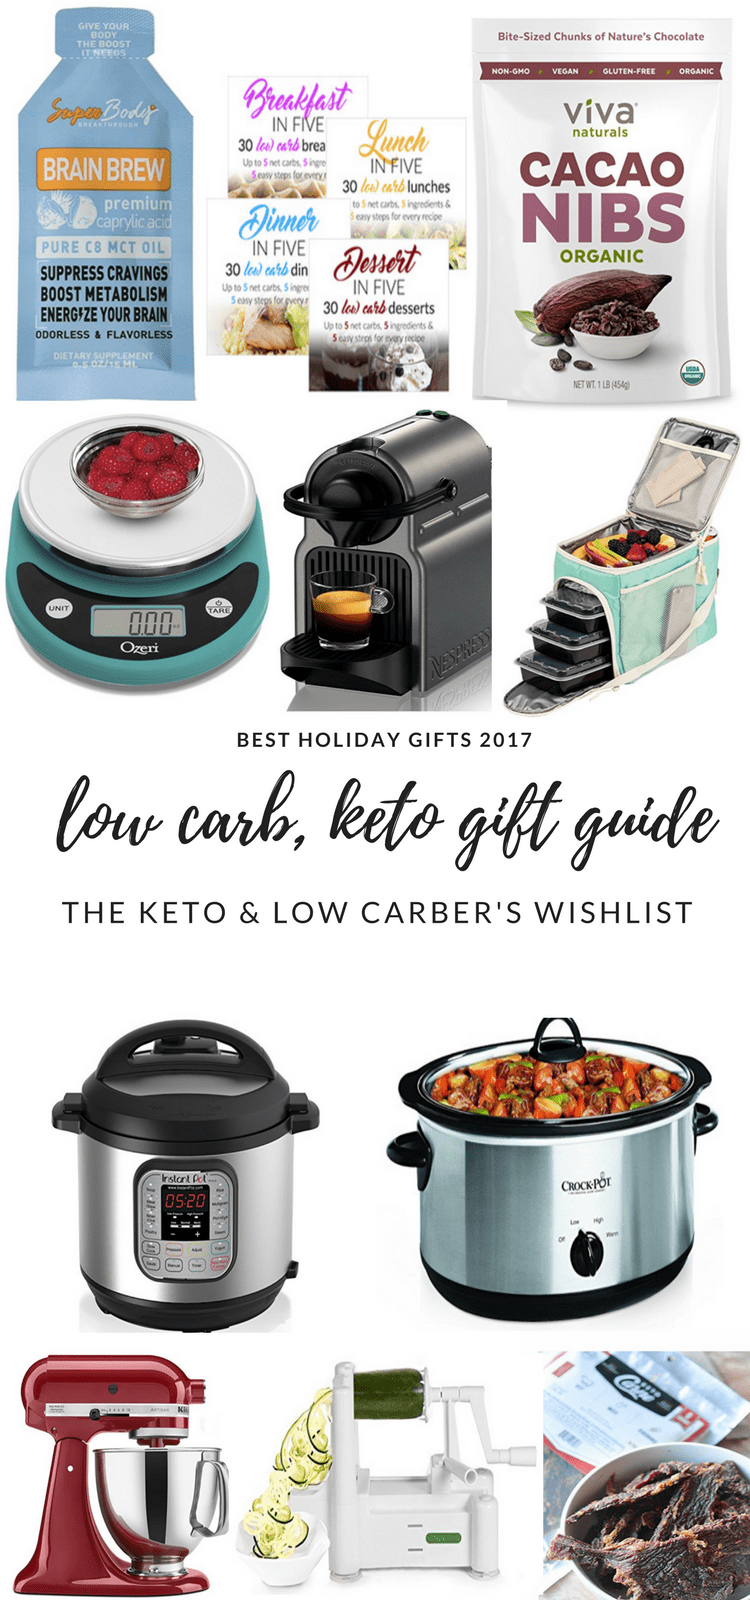 Low Carb Gift Guide #lowcarb #giftguide #giftguide2017 #keto #whole30 #paleo #lowcarbgiftguide #ketogiftguide